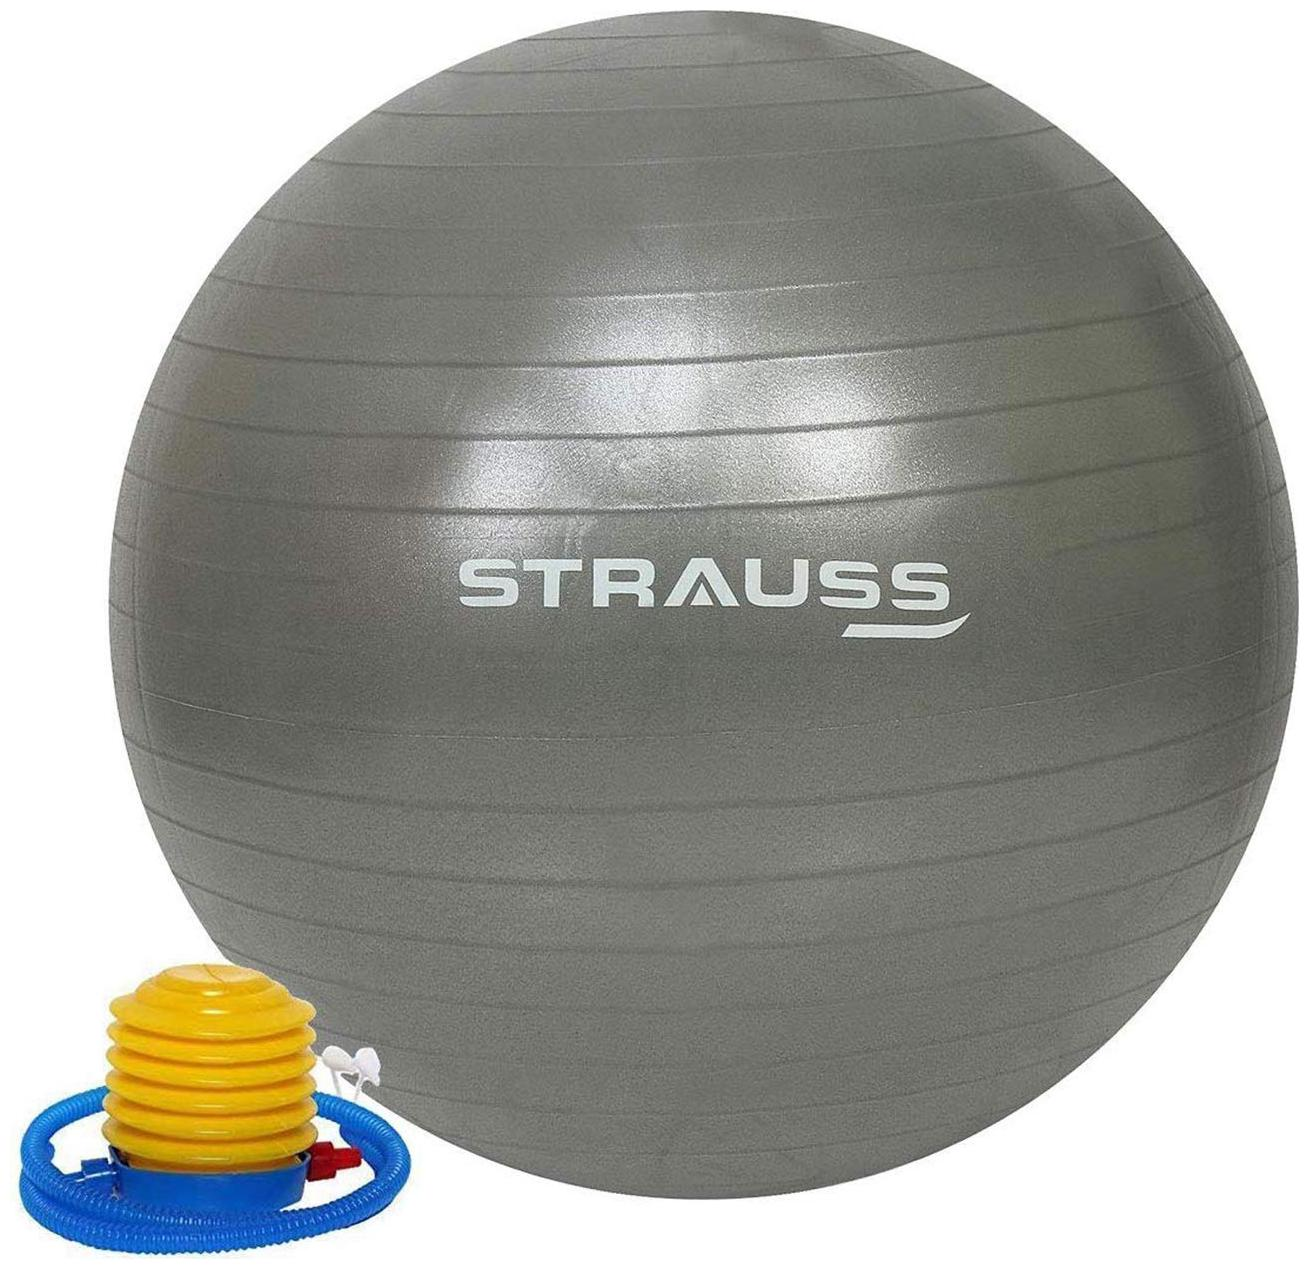 Strauss Anti Burst Gym Ball, 55 CM,  Grey  by Khel Kood